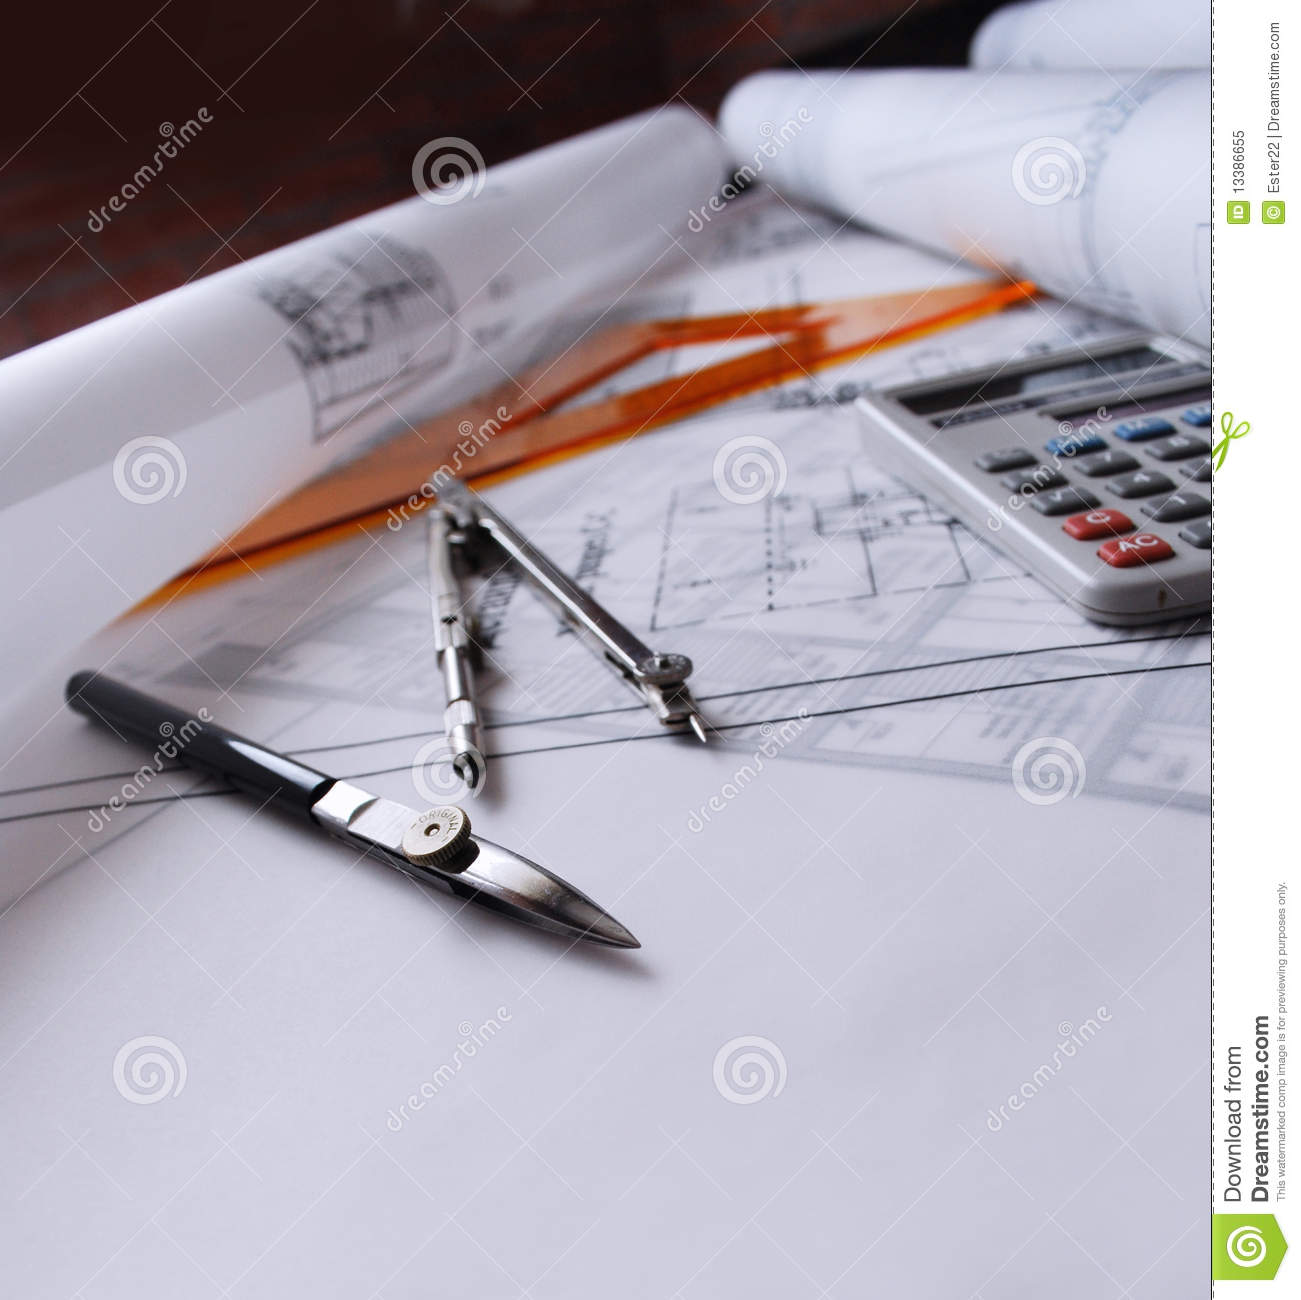 Architecture Drawing Instruments instruments for drawing on a graph paper. stock image - image